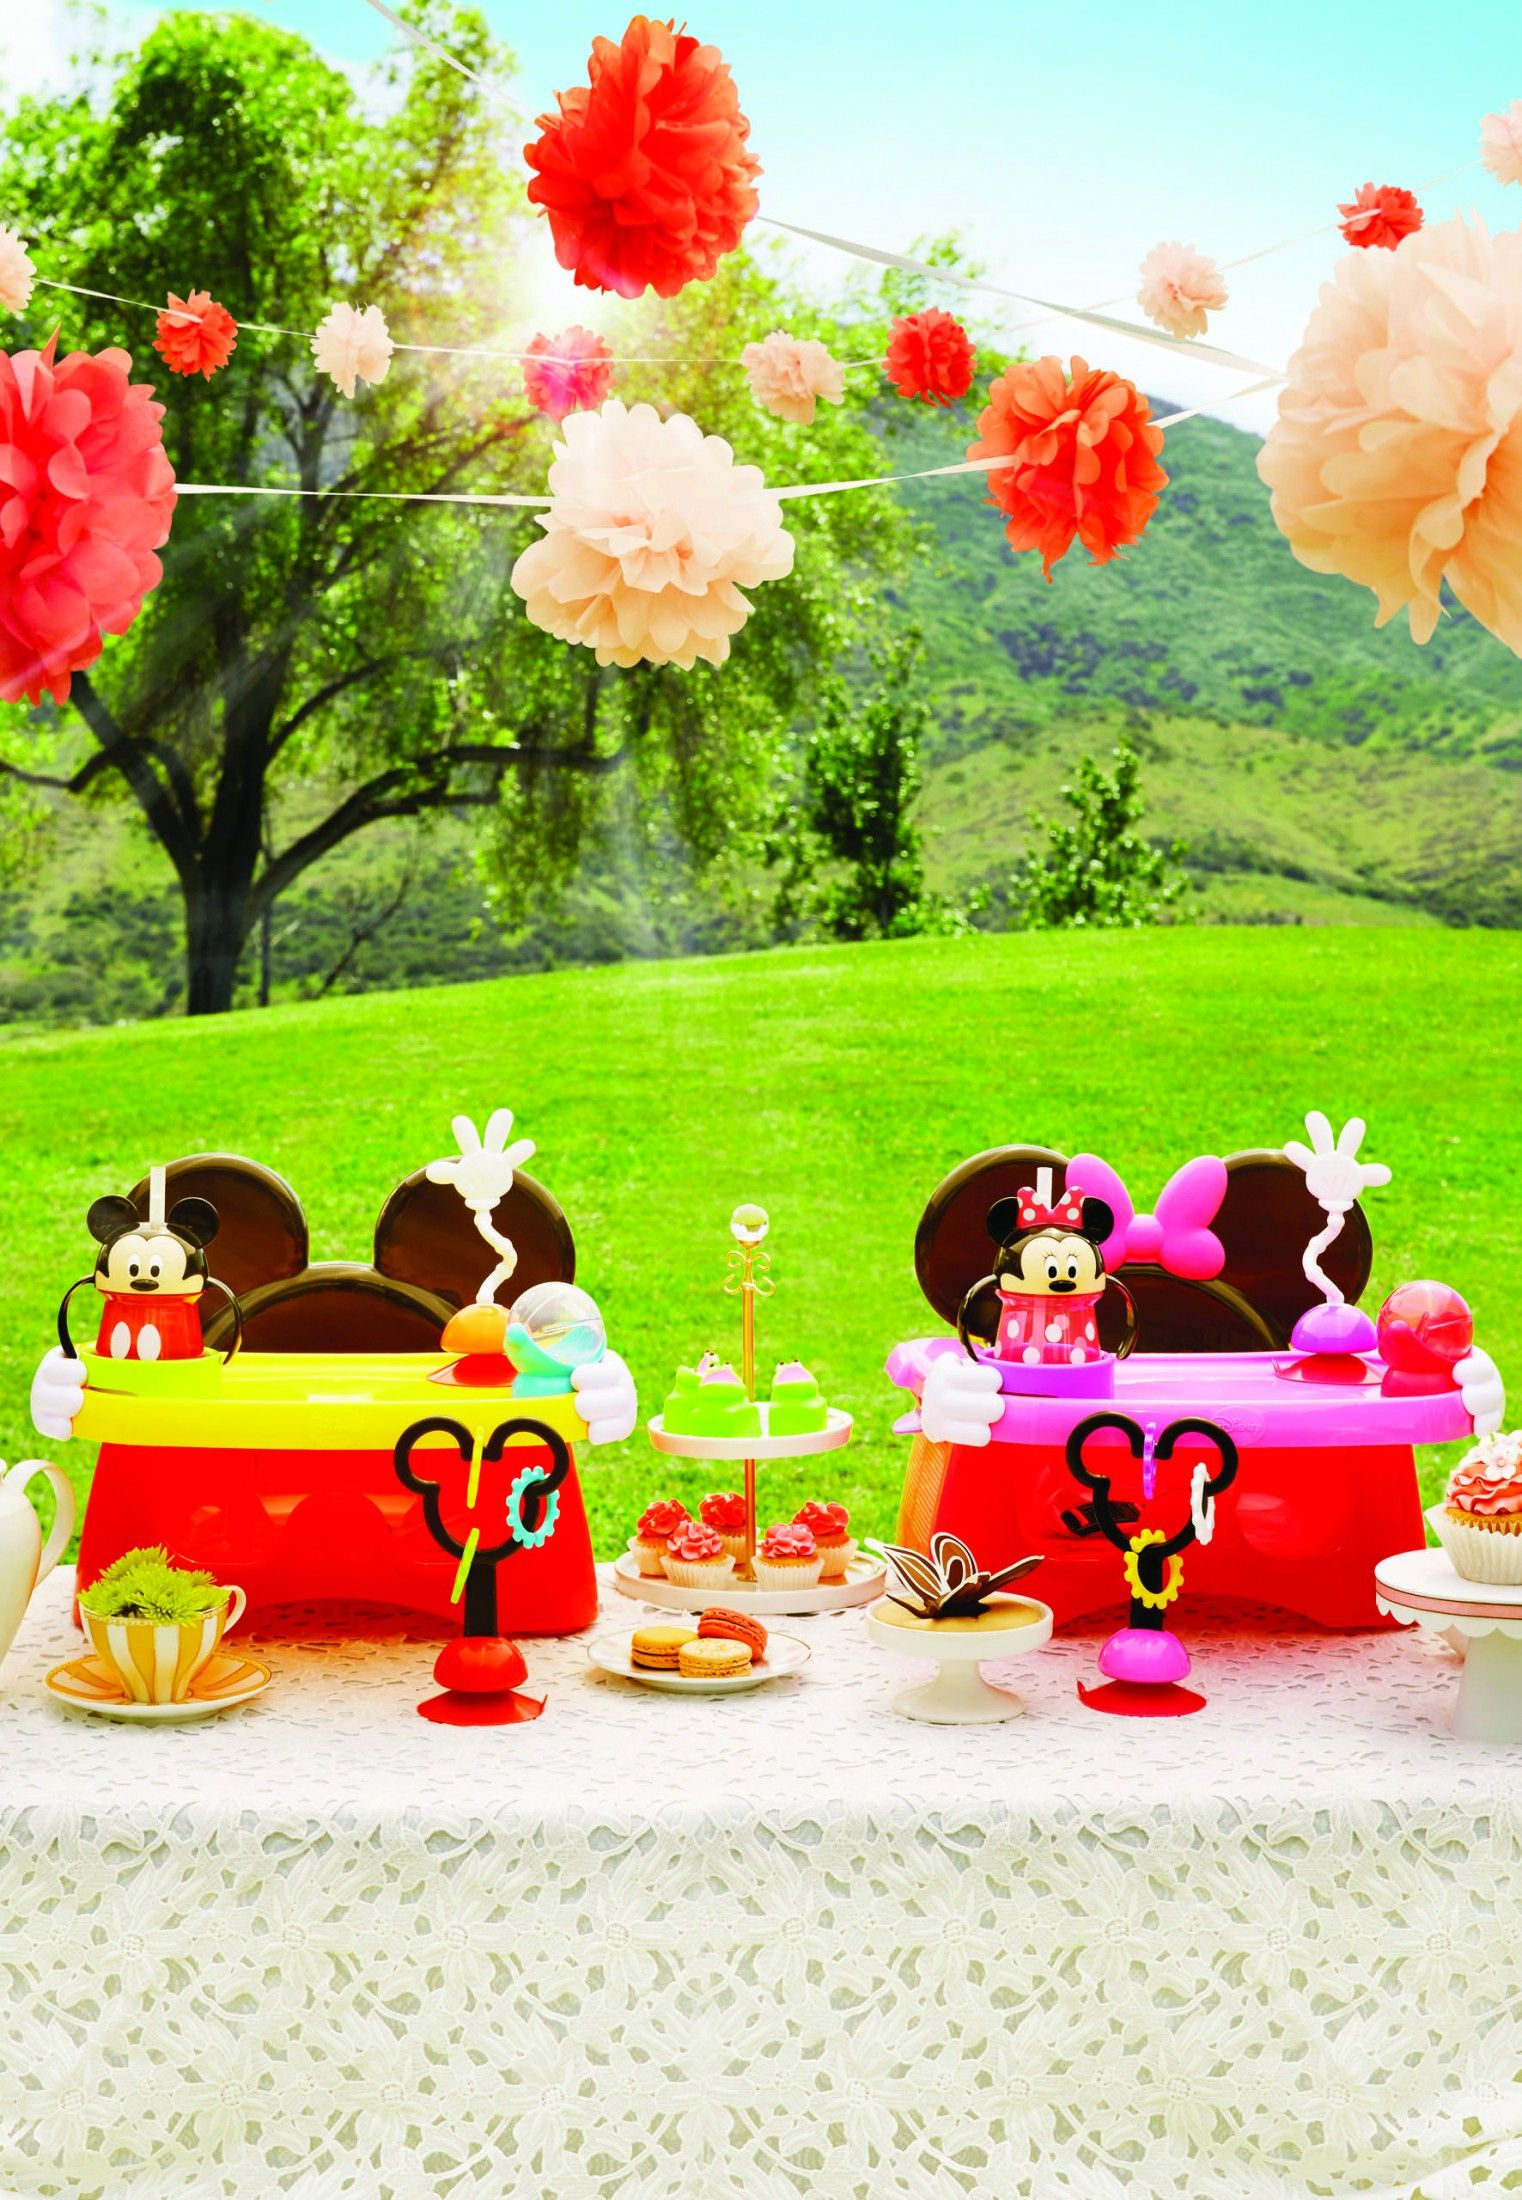 ad lifes a party with disney baby mickey minnie mouse themed accessories